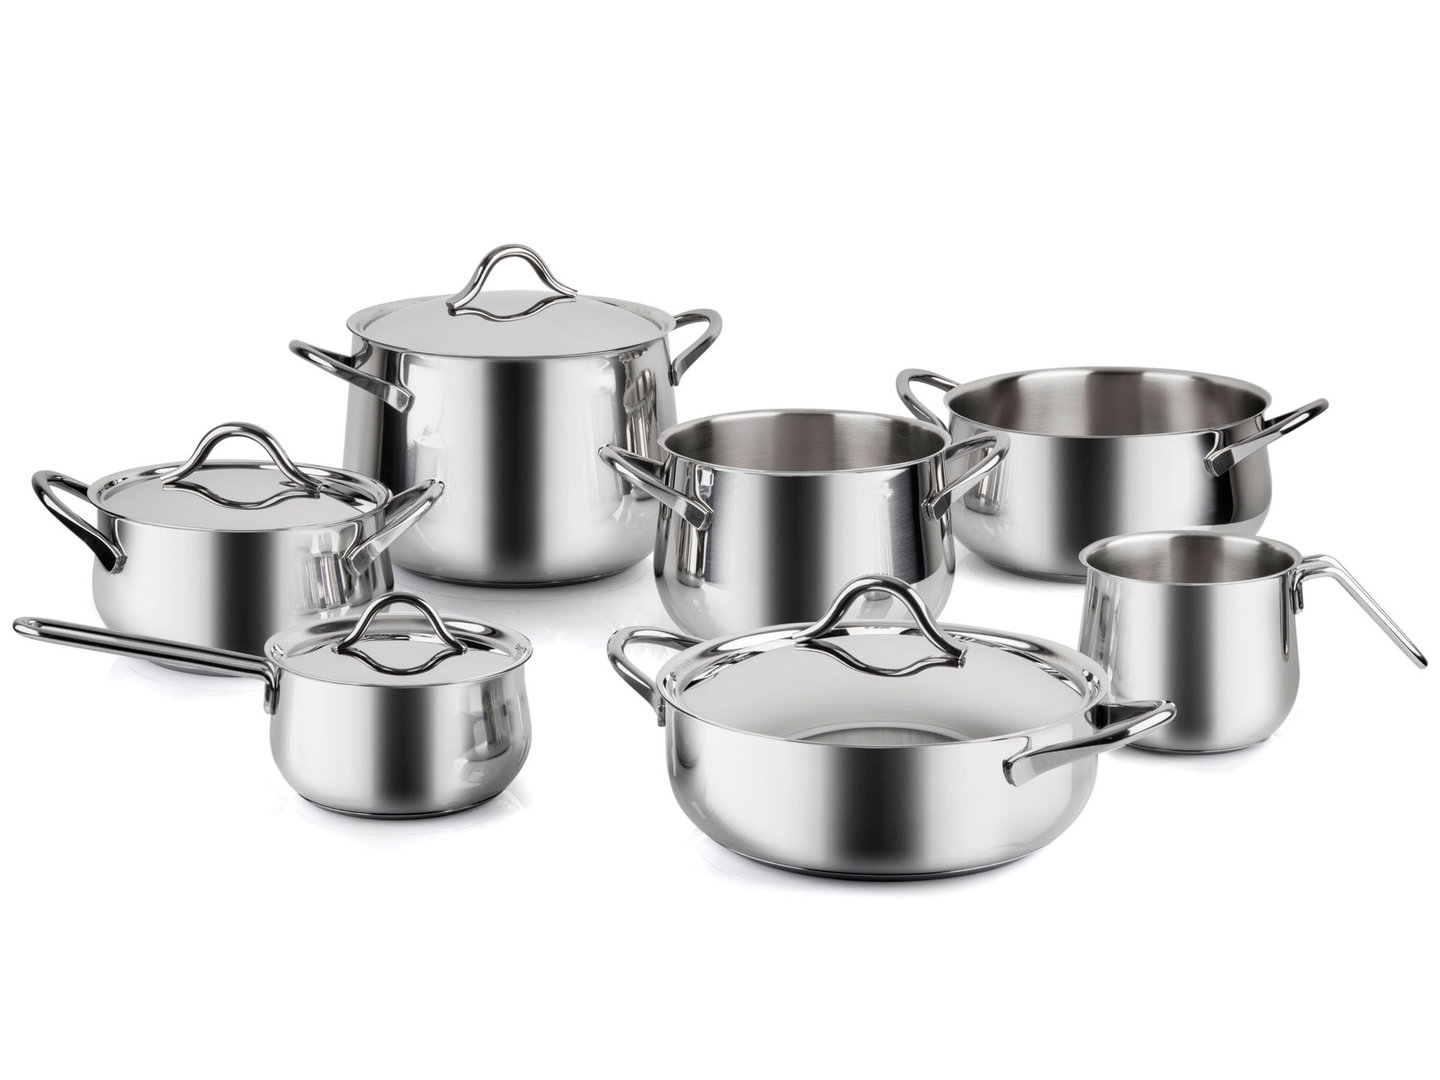 BARAZZONI stainless steel cookware set SAPORE ITALIANO 11 pieces